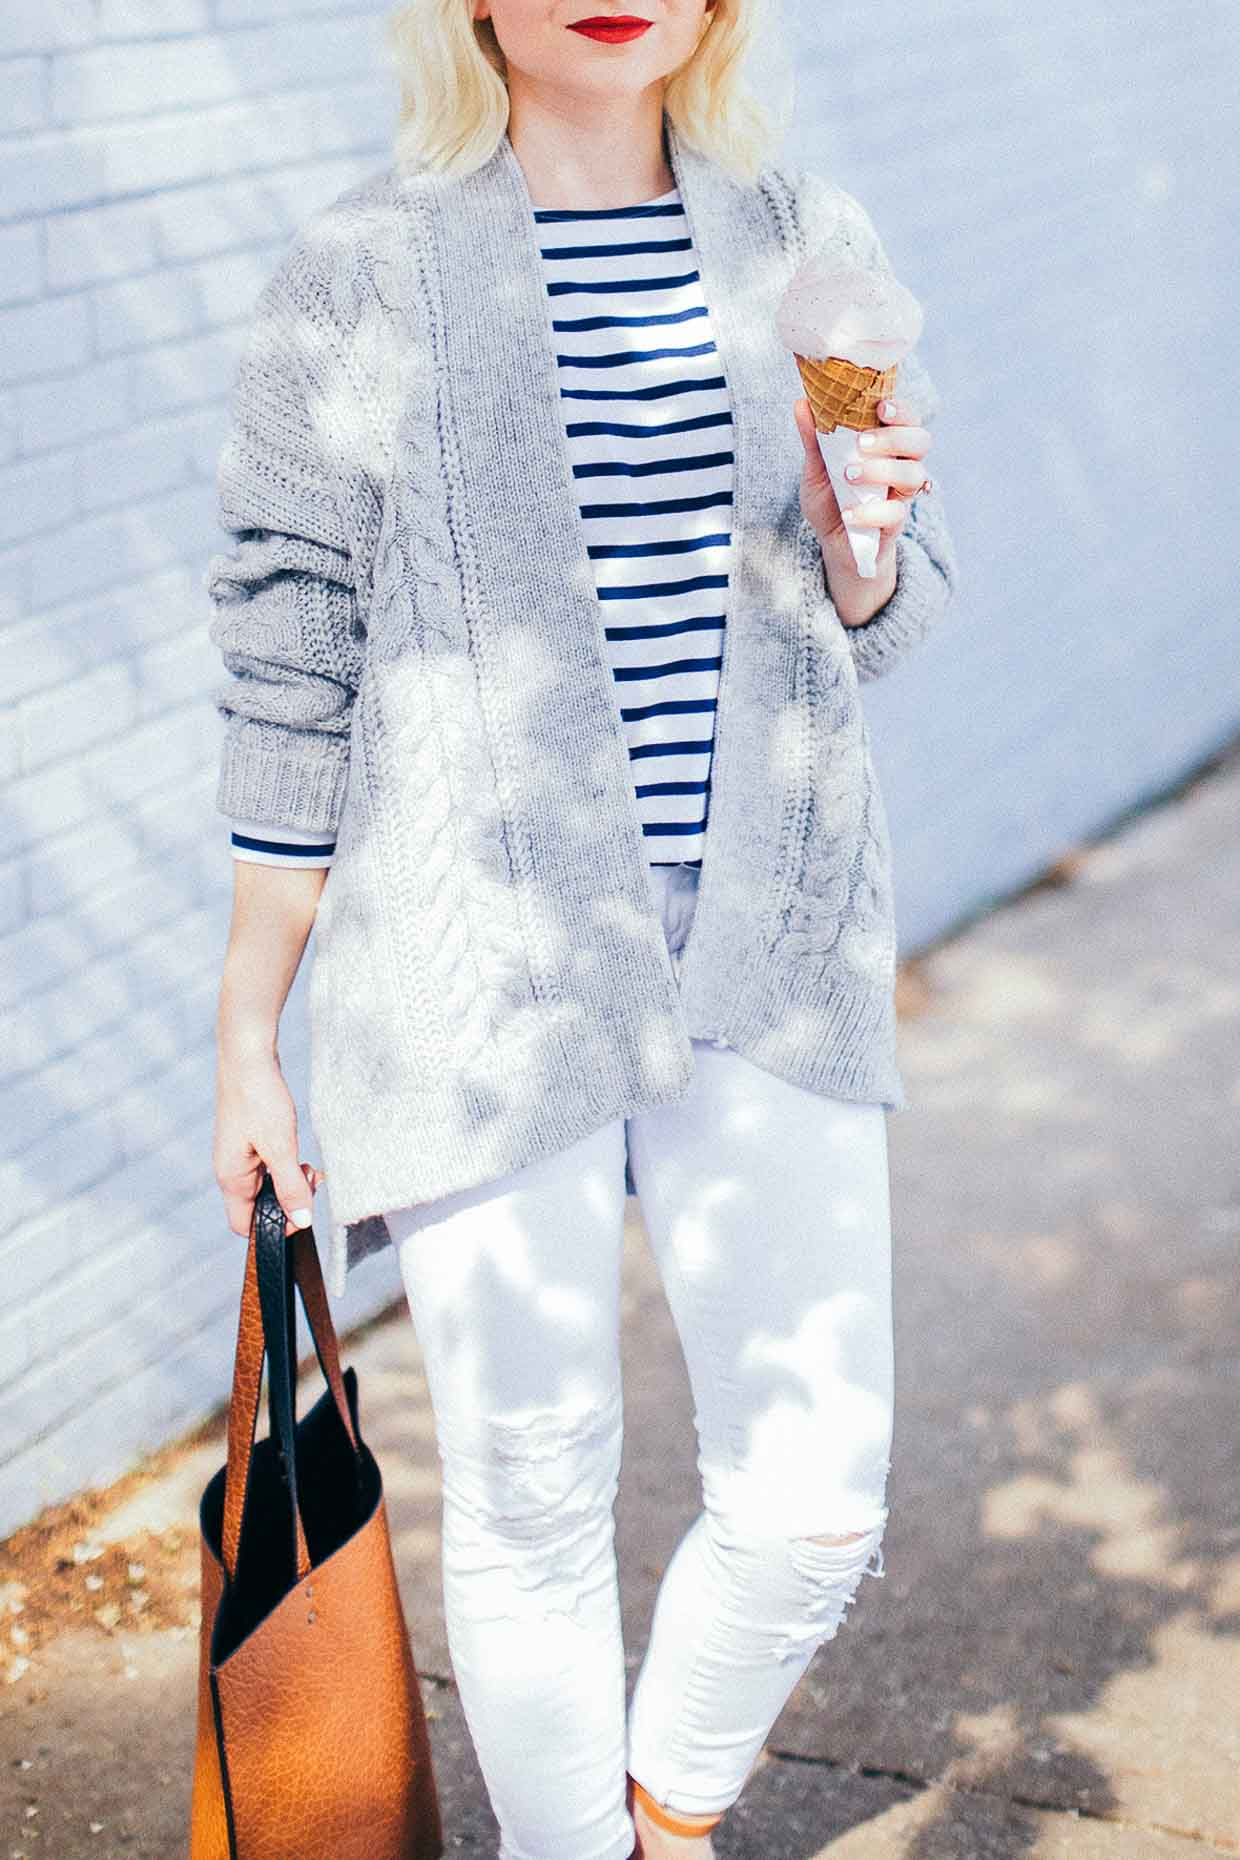 Gap Grey Sweater - Poor Little It Girl